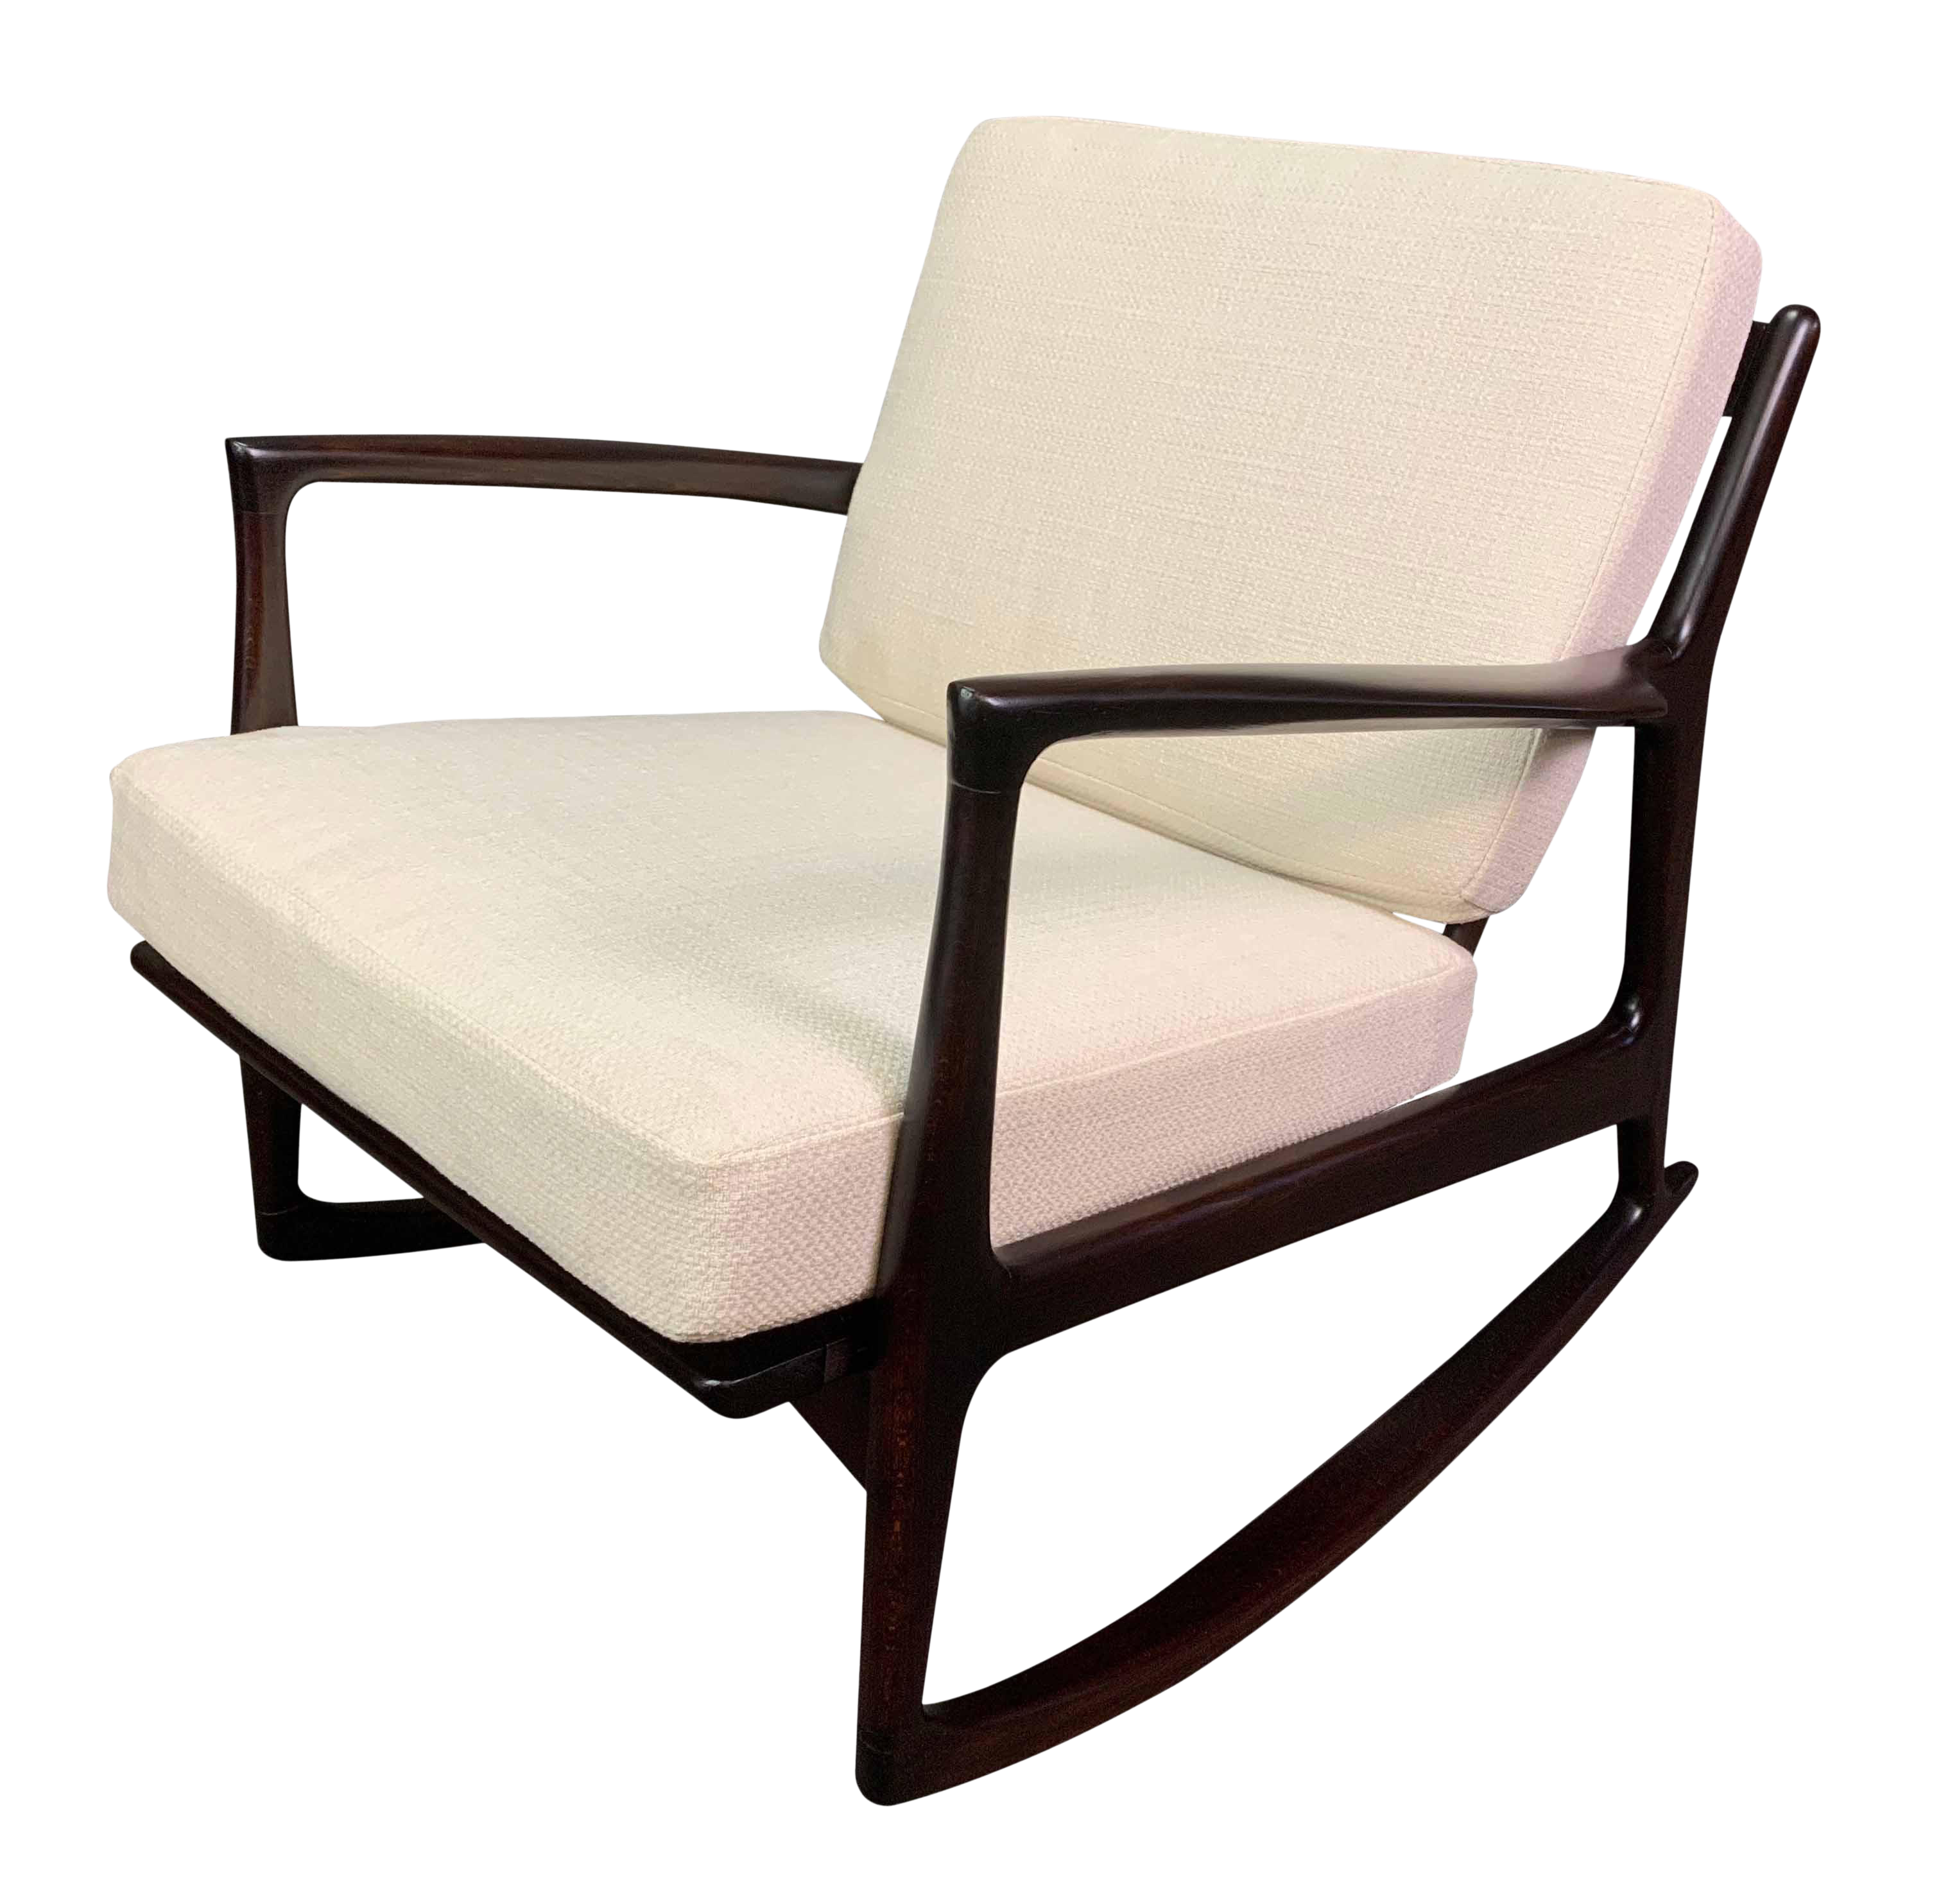 Incredible Vintage Danish Mid Century Modern Rocking Chair By Kofod Larsen For Selig Alphanode Cool Chair Designs And Ideas Alphanodeonline